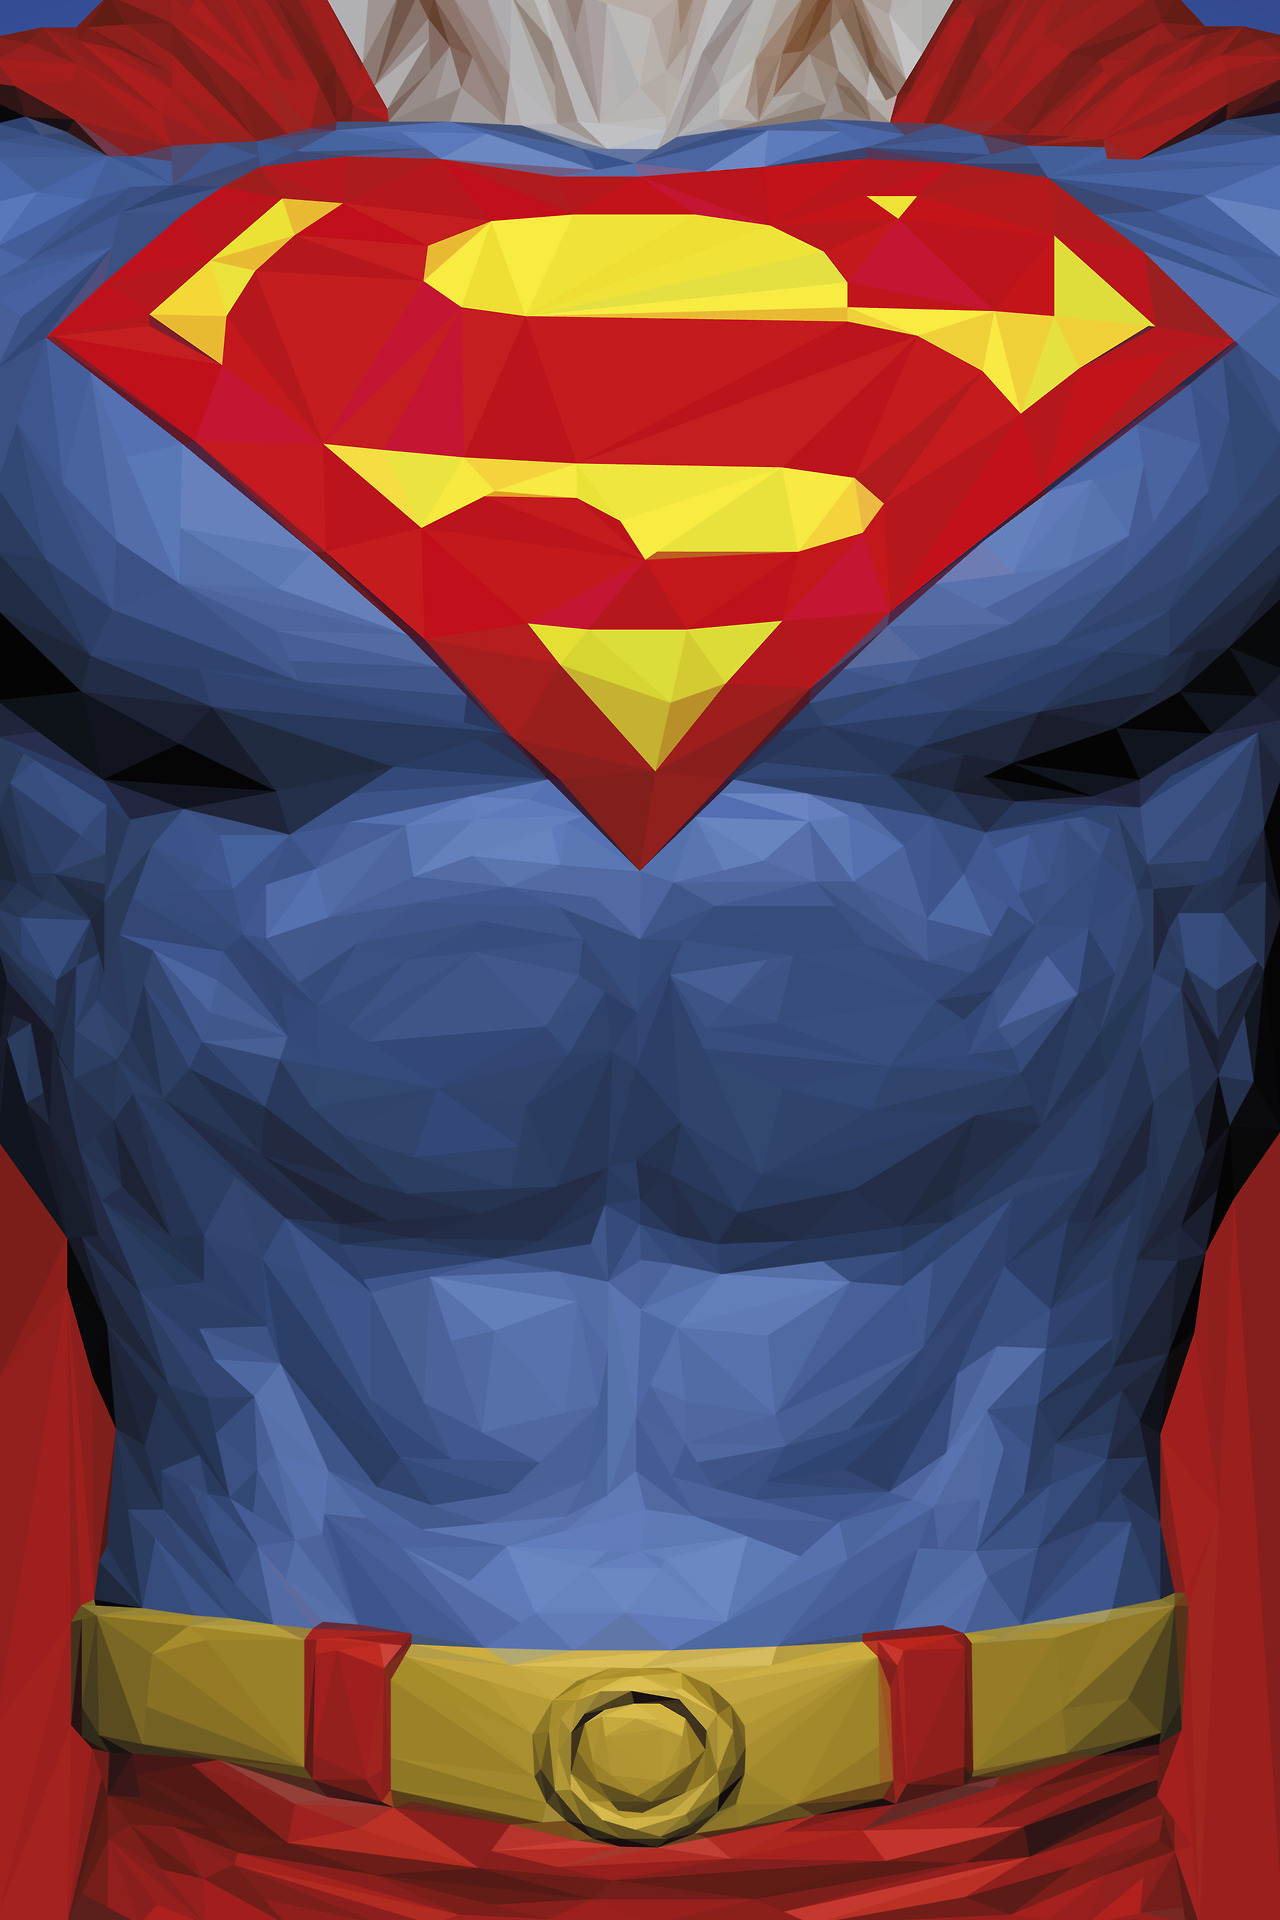 simon-delart-superhero-triangle-illustrations-superman